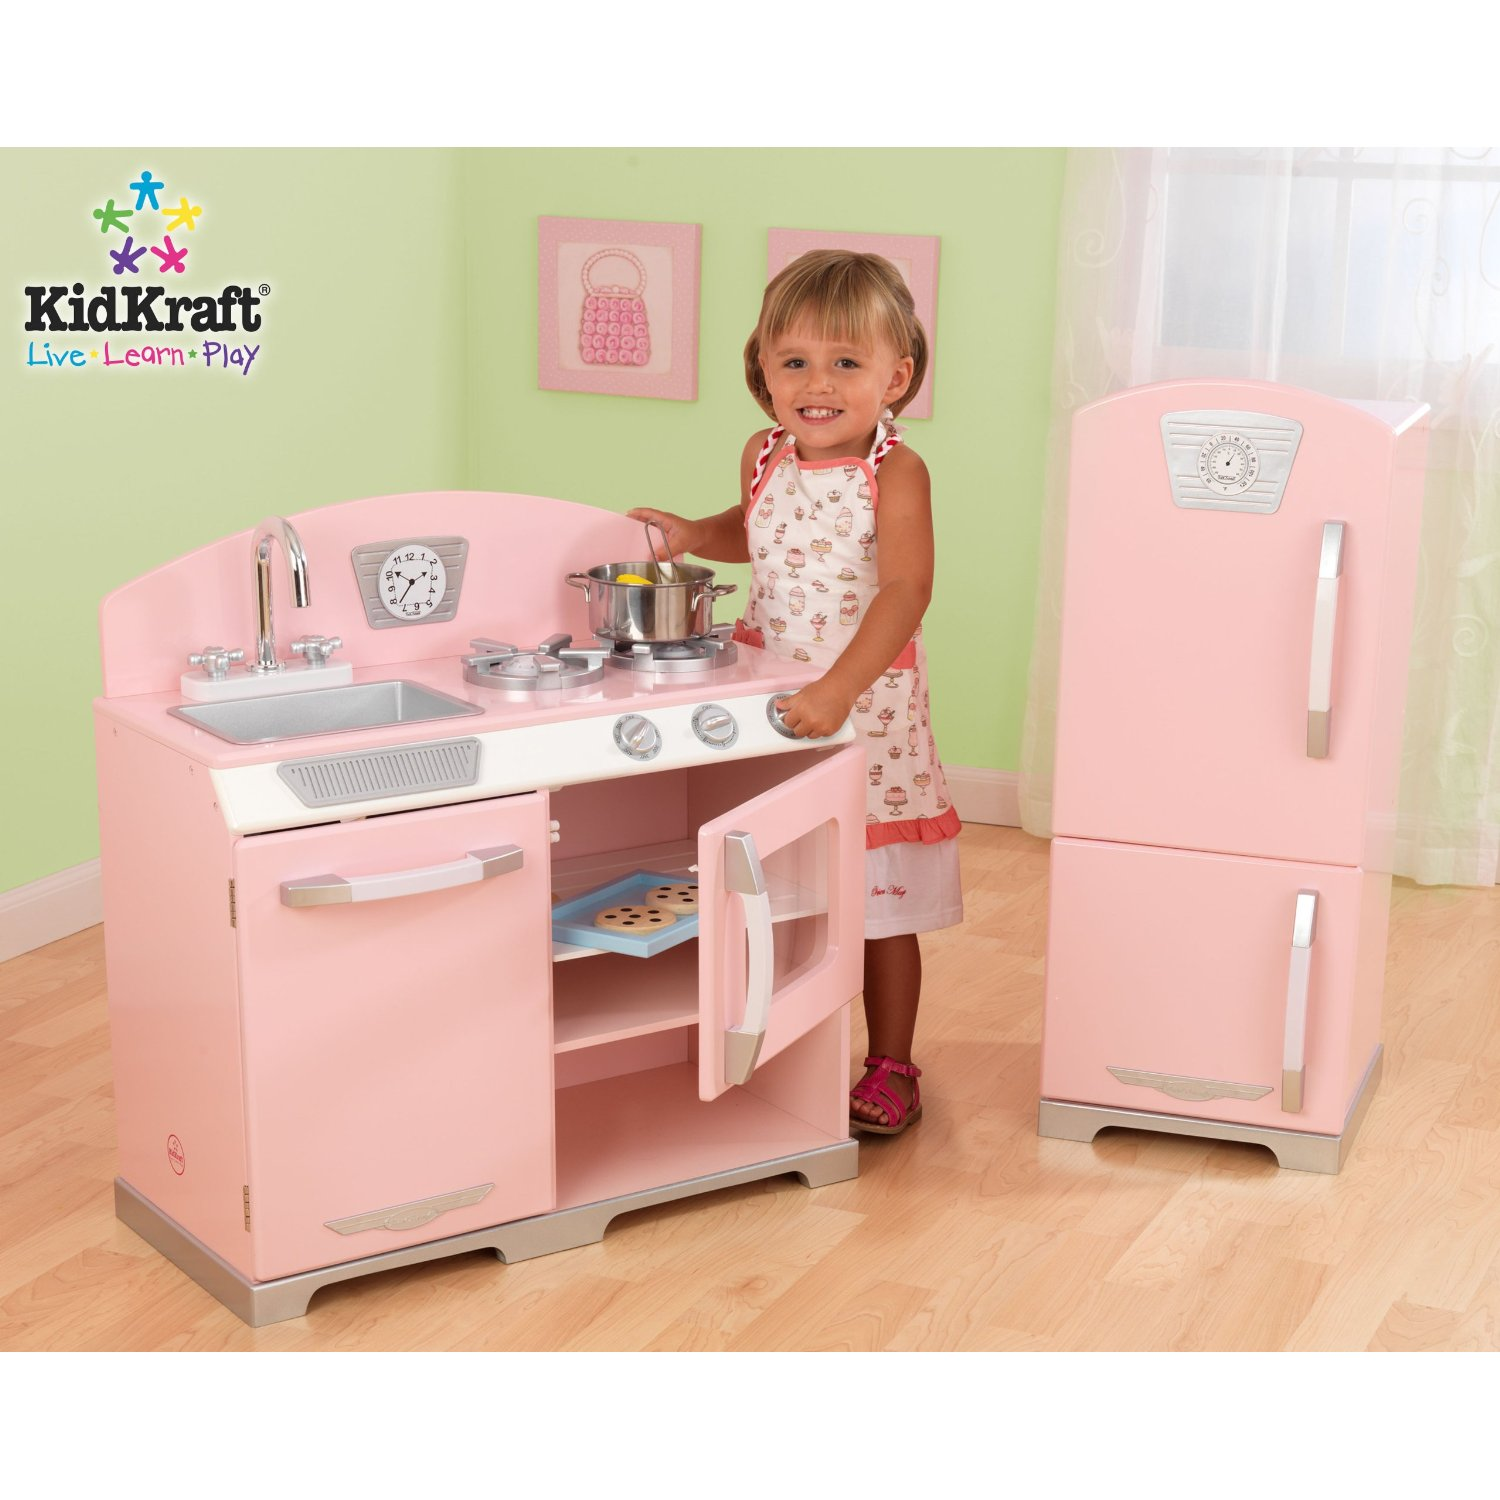 Kidkraft Vintage Kitchen In Blue 53227: The One With The Cupcakes: The One With The Play Kitchens